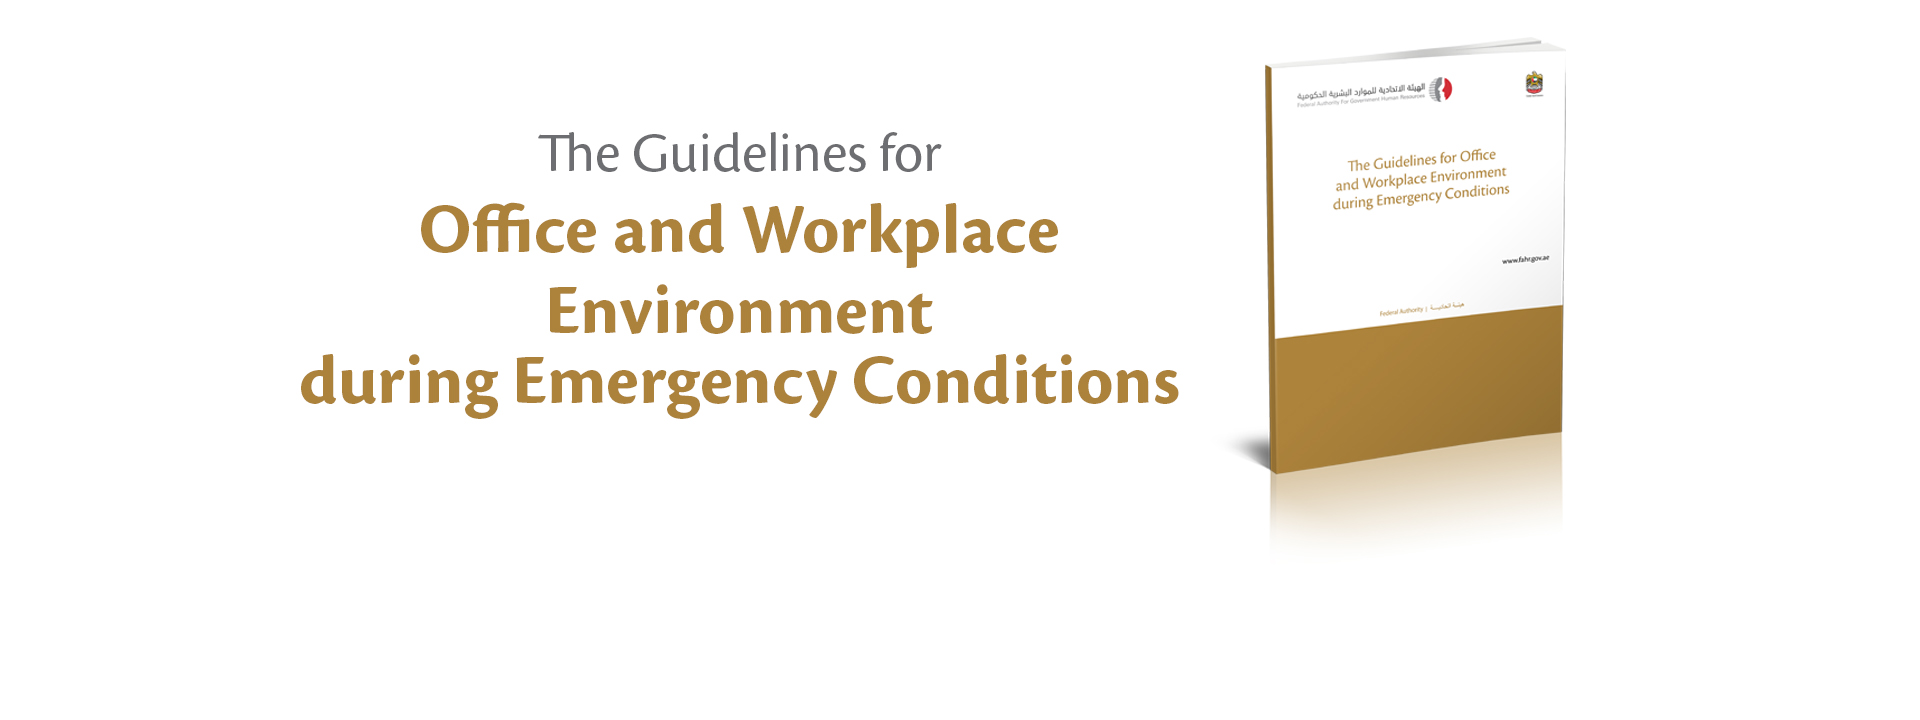 The Guidelines for Office and Workplace Environment during Emergency Conditions